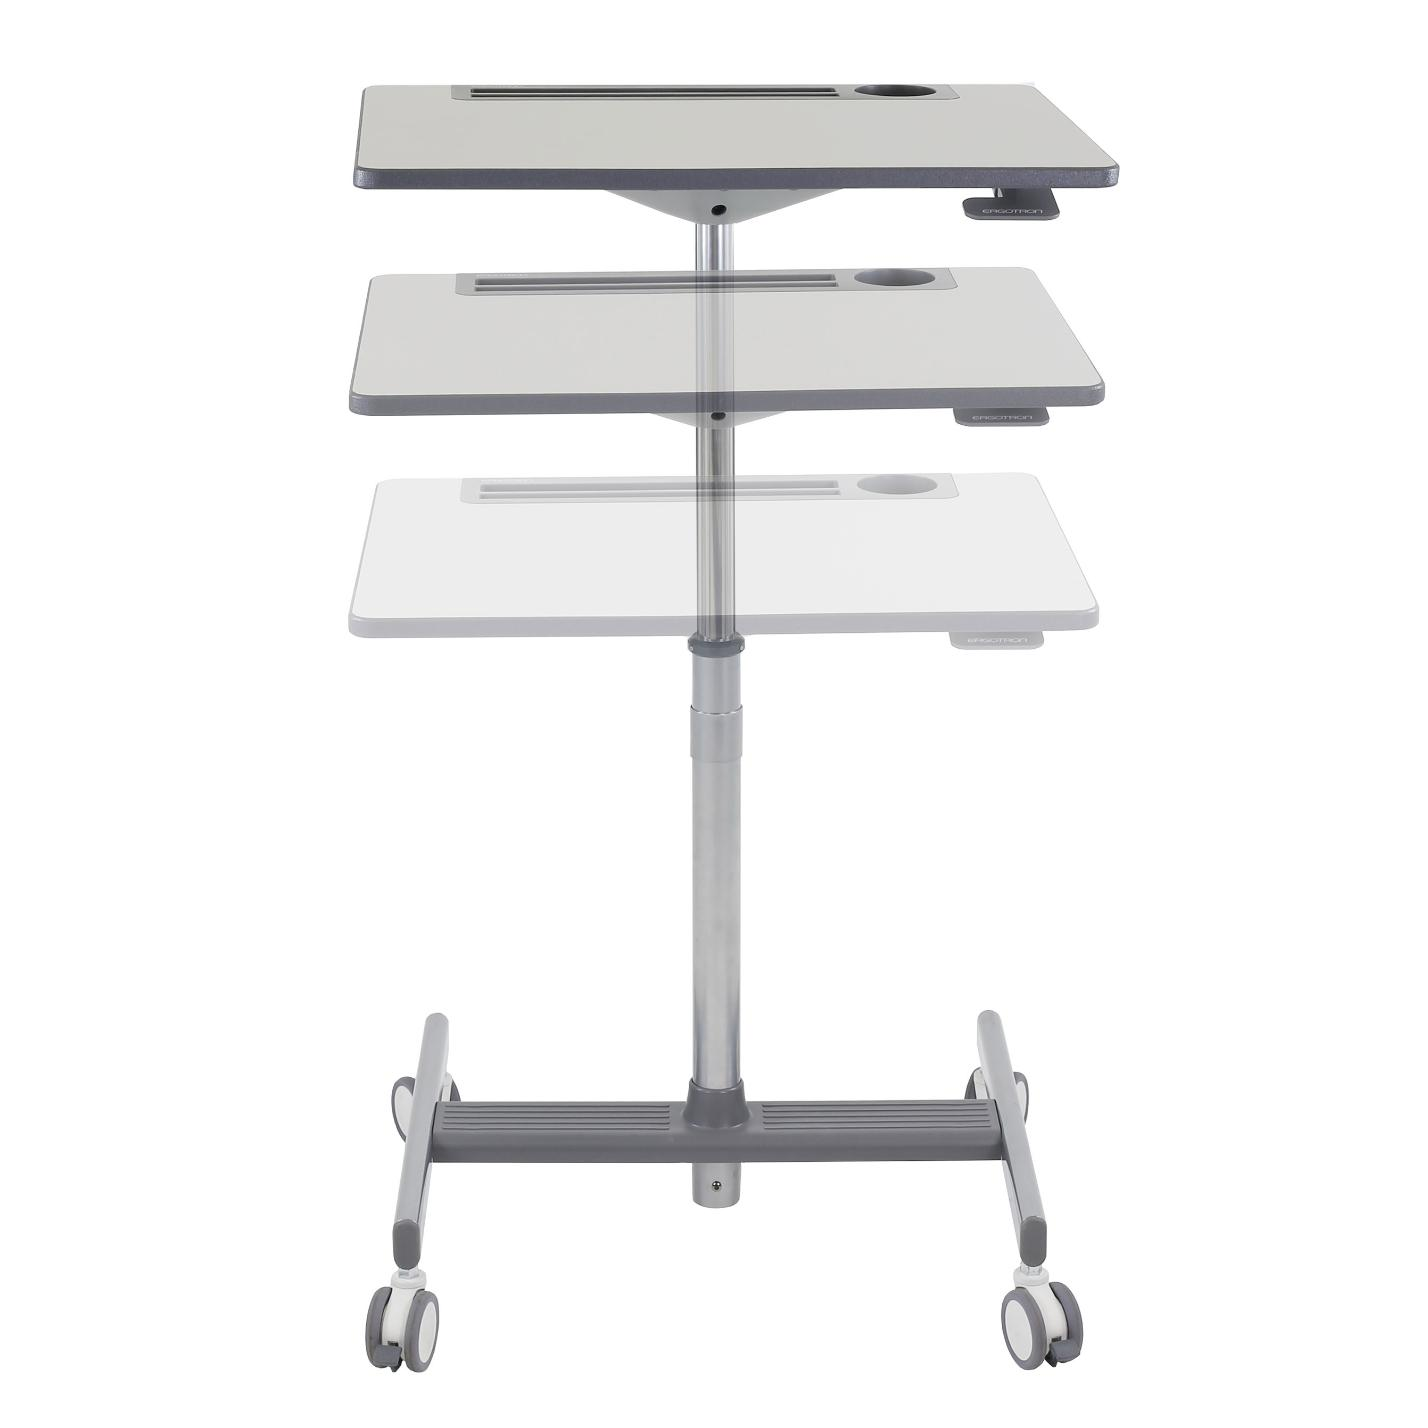 LEARNFIT SE2 SIT STAND DESK